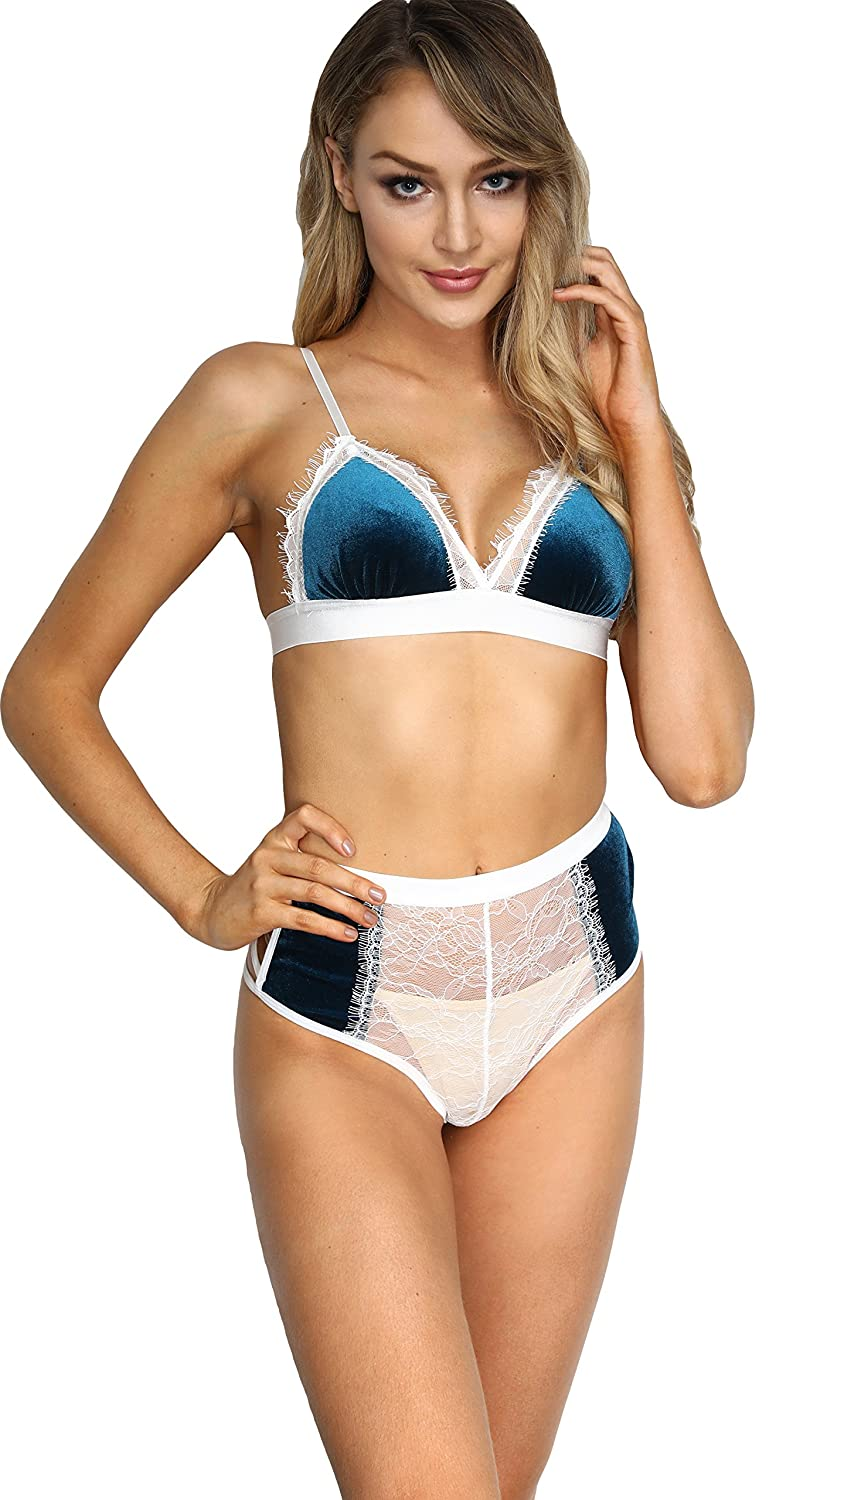 01123a164ac2e Velvet Eyelash Lace Bra Set and High Waisted Panty Bralette Set Christmas  and Valentine s Day Lingerie Babydoll Everyday Bras at Amazon Women s  Clothing ...